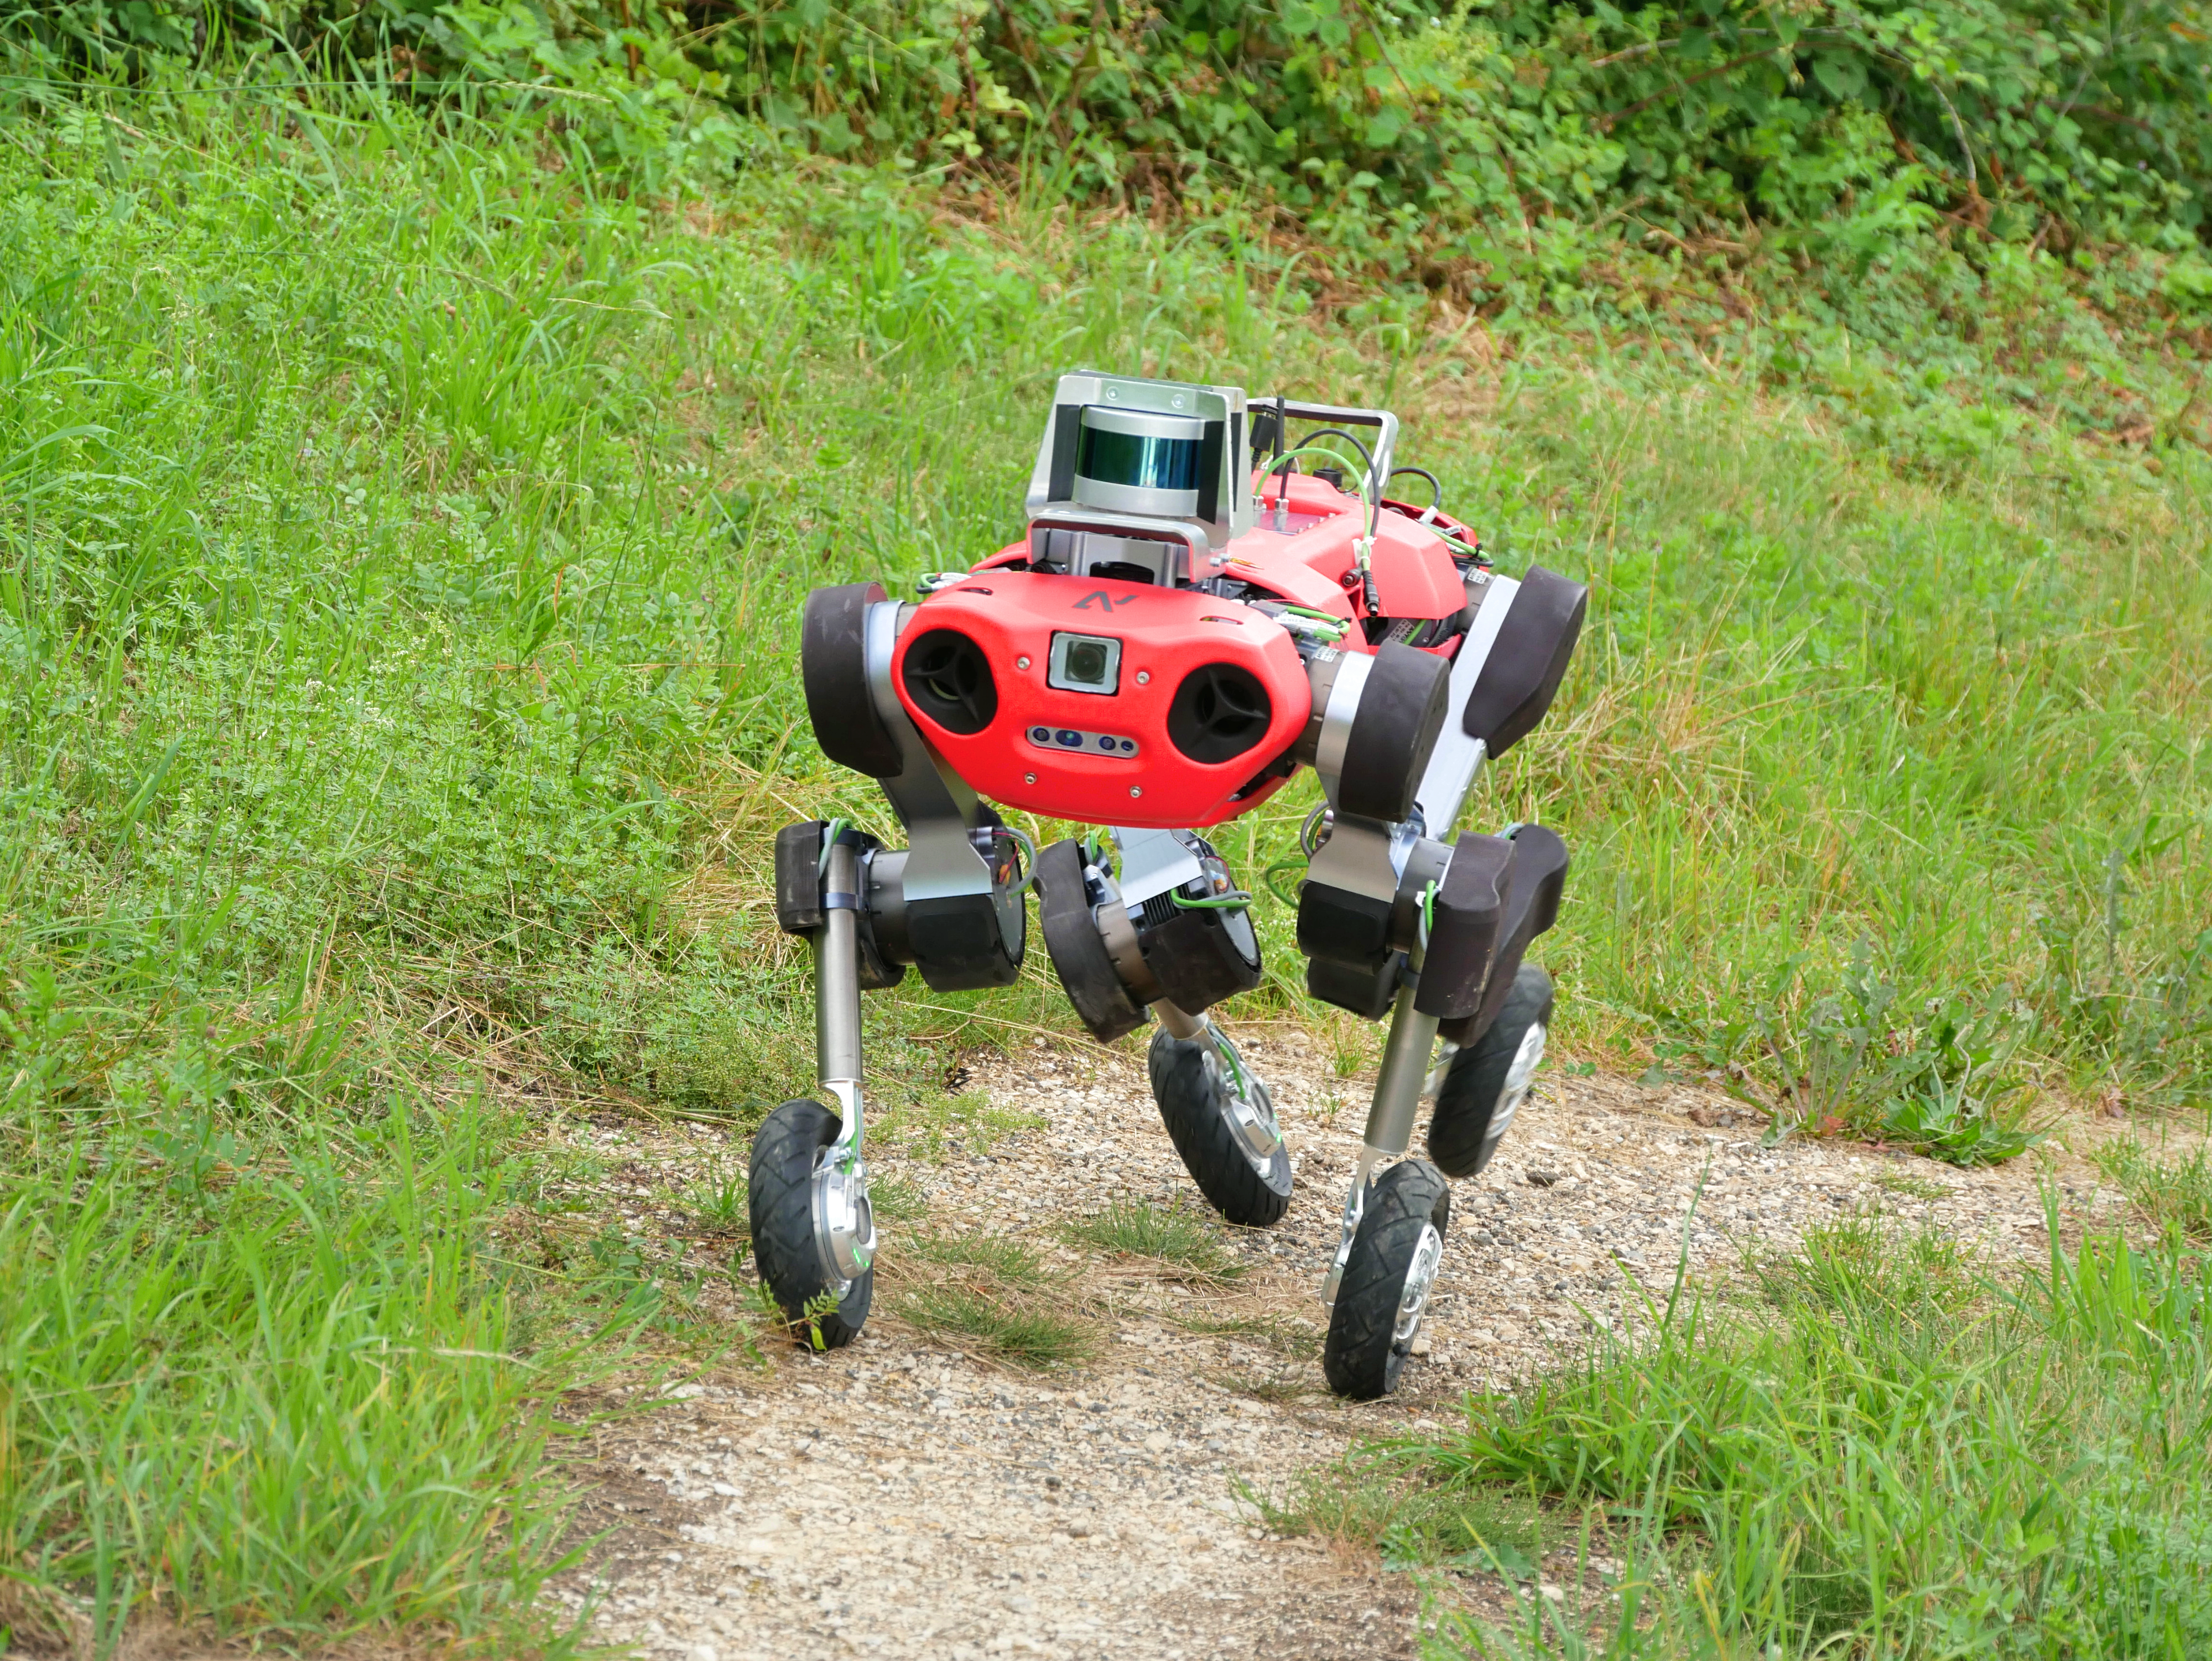 This experimental version of the ANYmal robot has both legs and wheels